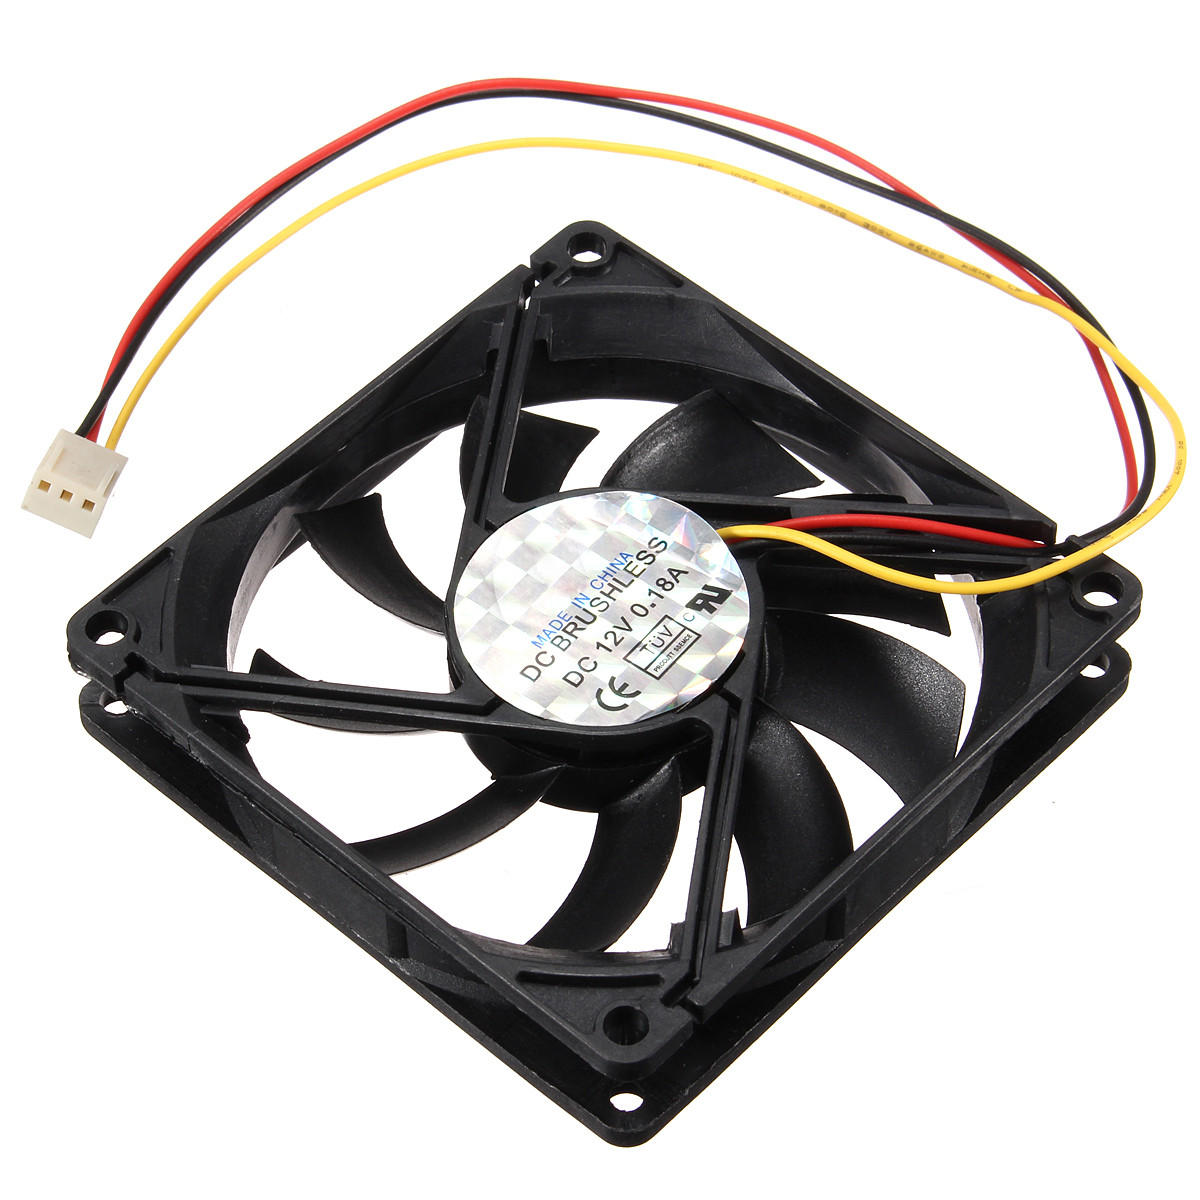 Us 2 49 80x80x15mm 3 Pin 12v Cpu Cooling Fan Cooler Pc Computer